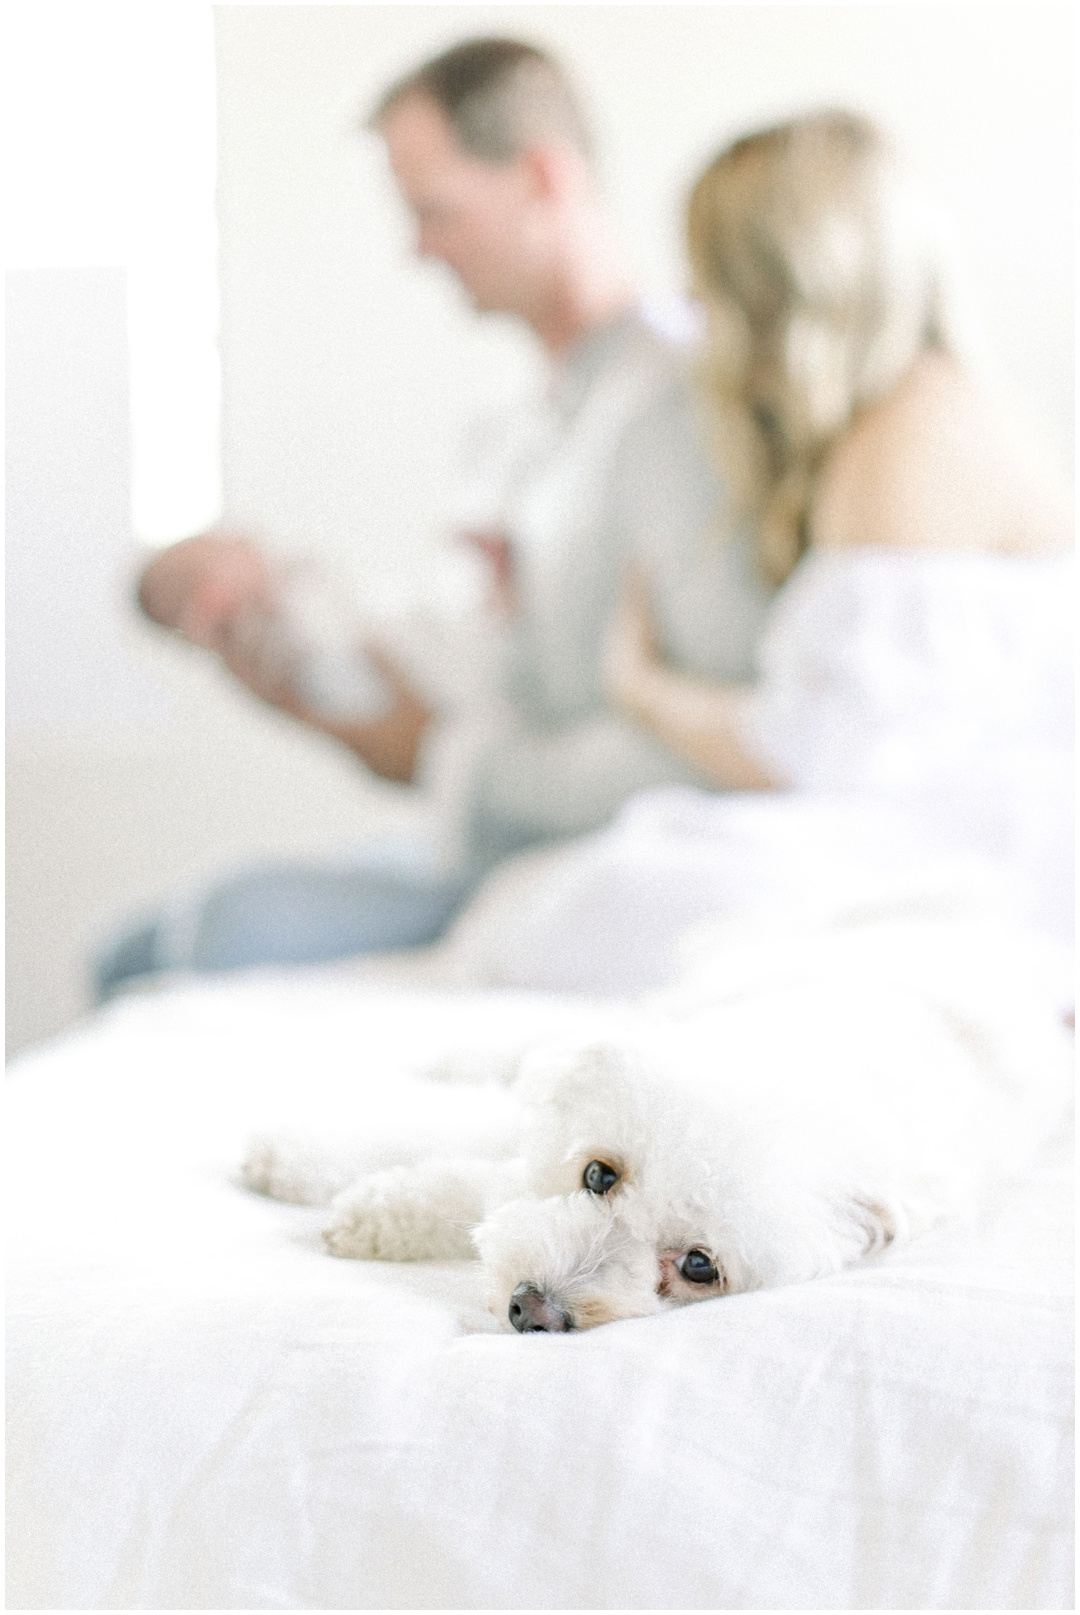 Newport_Beach_Newborn_Light_Airy_Natural_Photographer_Newport_Beach_Photographer_Orange_County_Family_Photographer_Cori_Kleckner_Photography_Huntington_Beach_Photographer_Family_OC_Newborn_Megan_Bradley_Schueneman_Charlie_Schueneman_Dean__3591.jpg